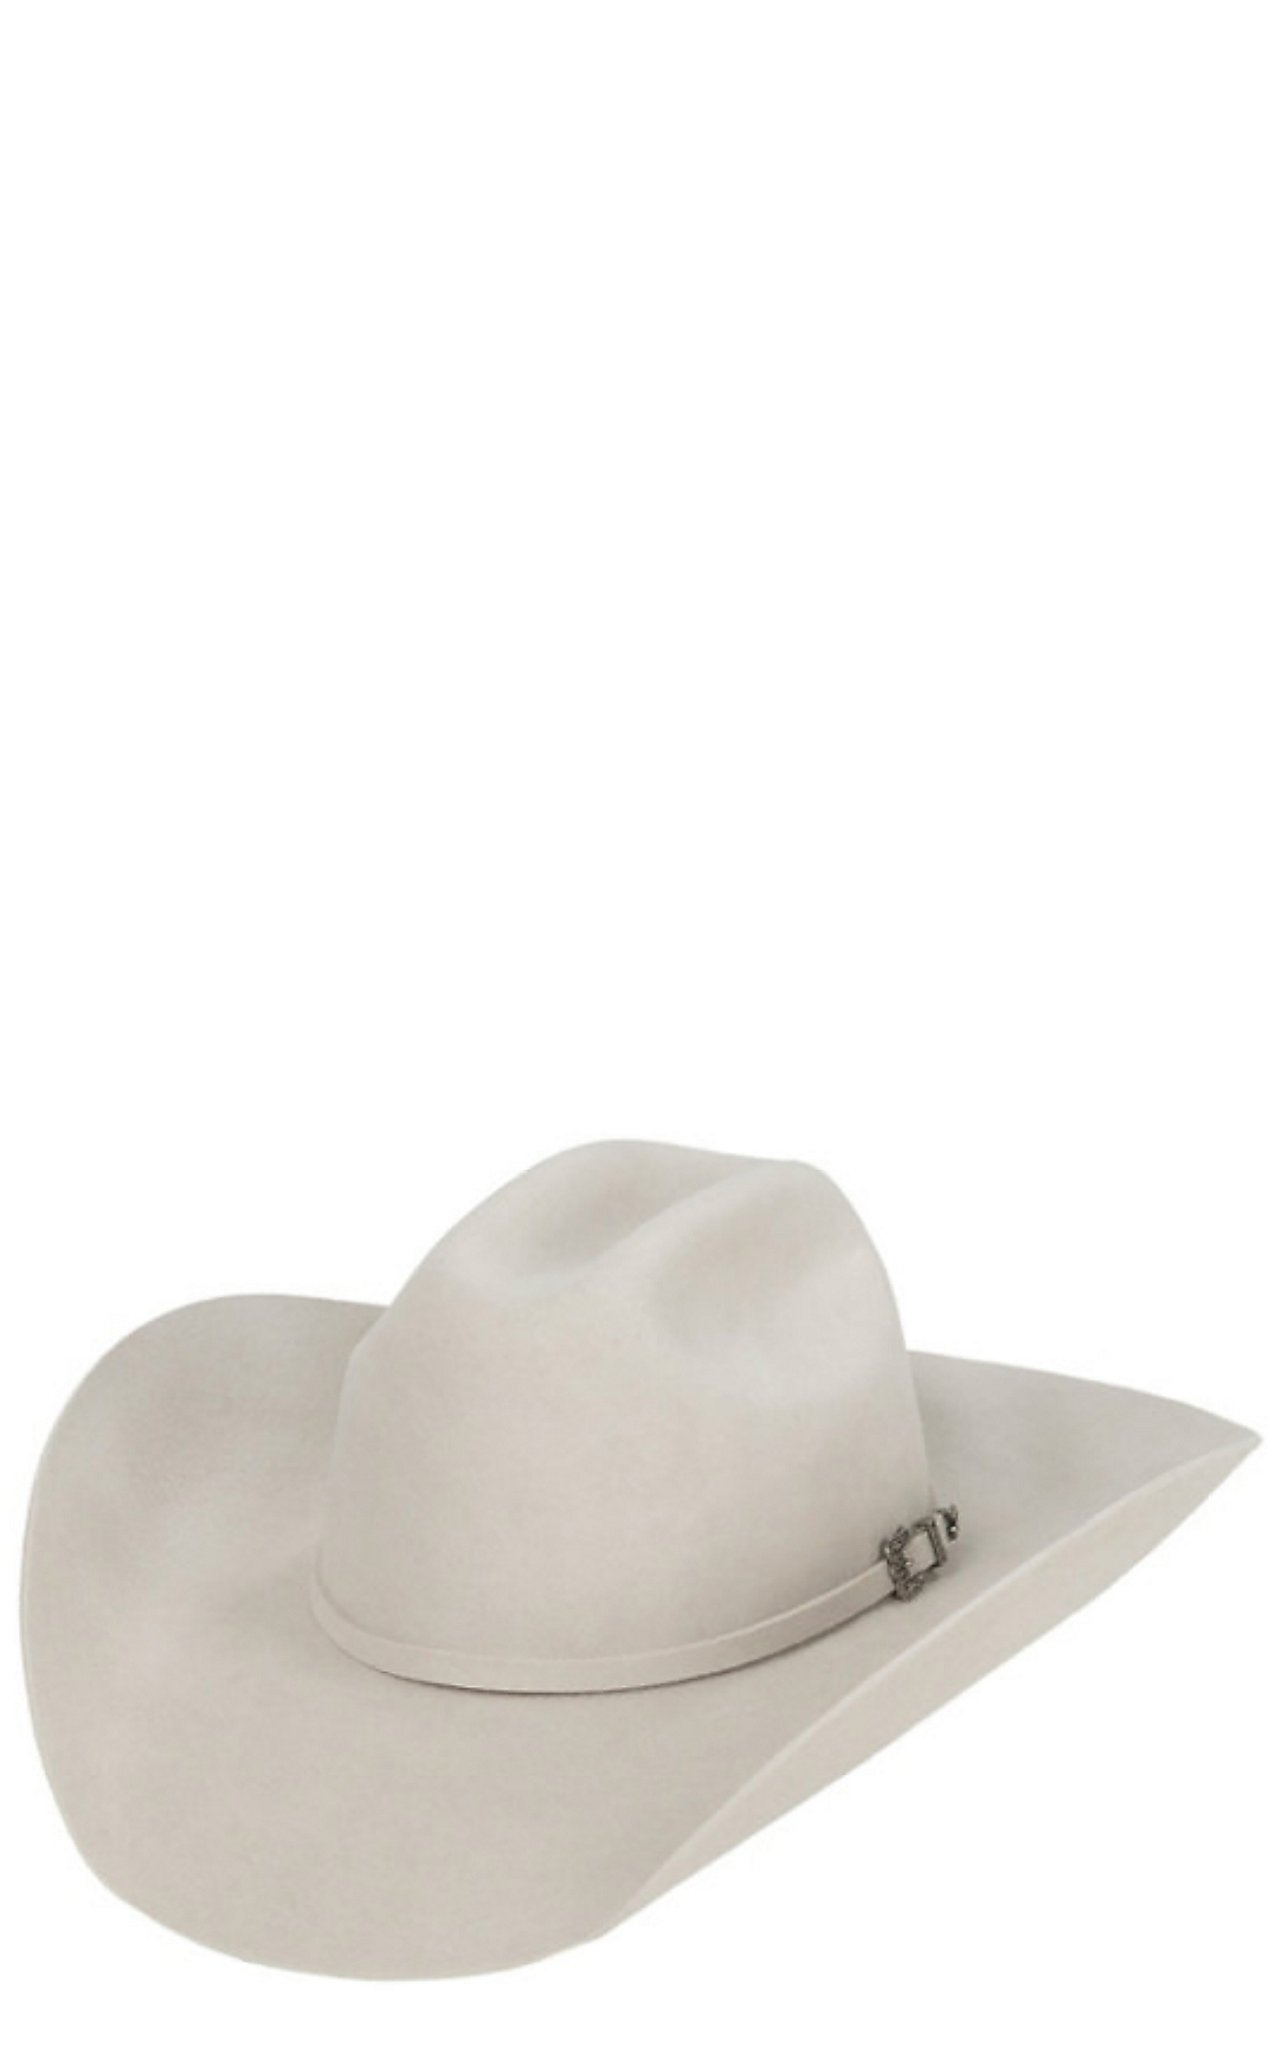 Master Hatters  Master Hatters 3X Waco Silverbelly Wool Cowboy Hat 9604d09fdb22